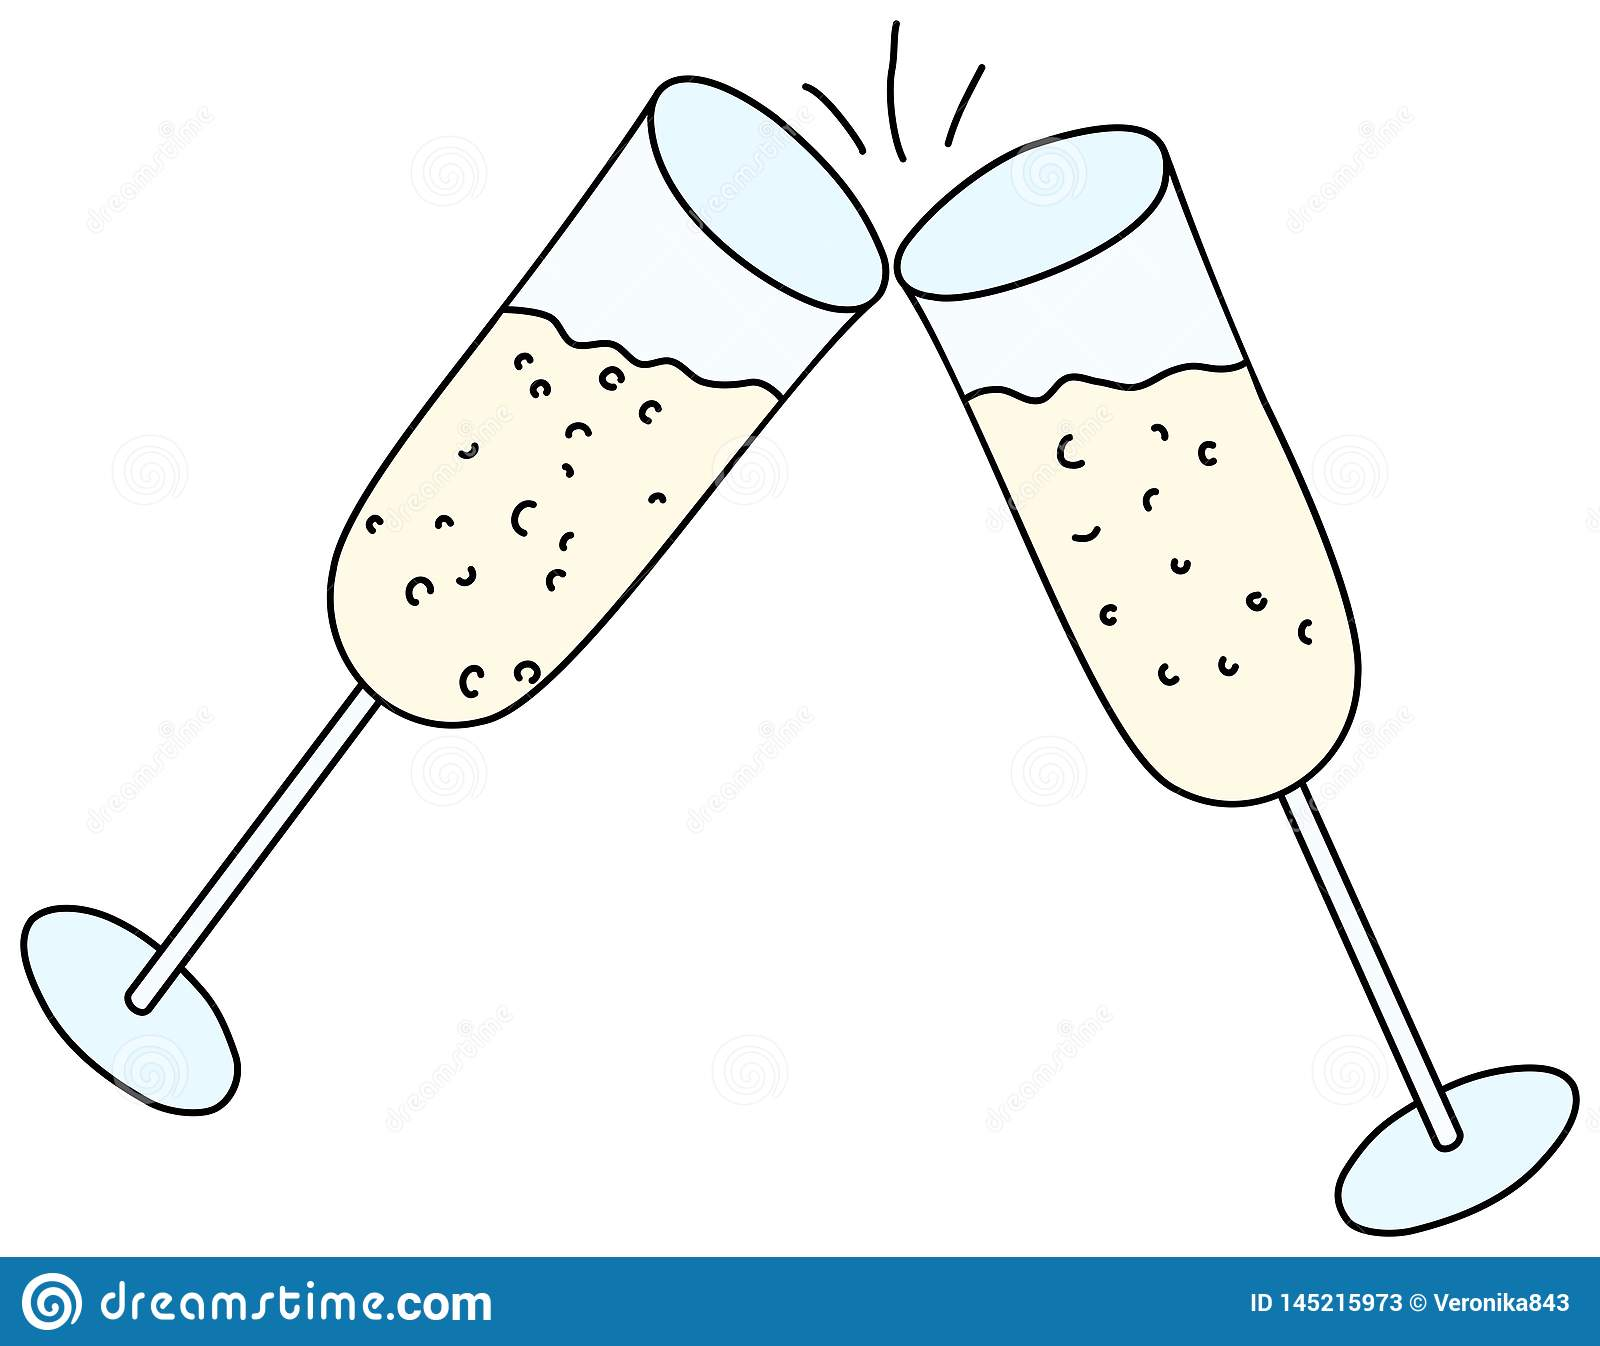 Touch clink glasses stock vector. Illustration of toast.